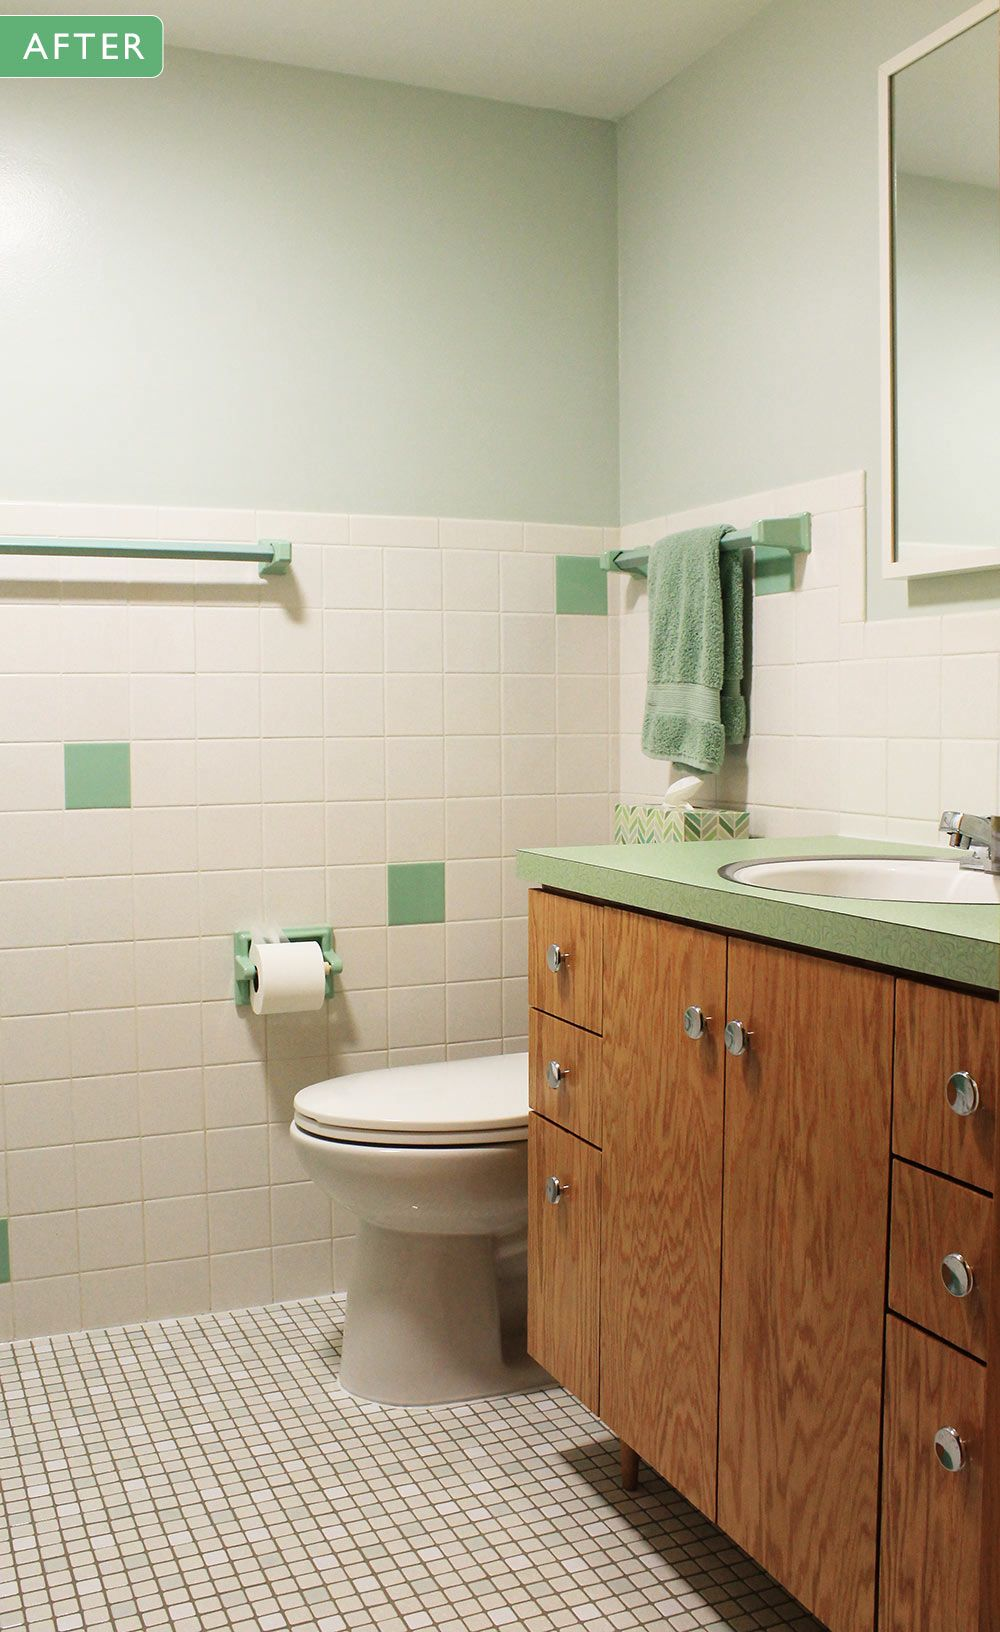 Kate S 1960s Green Bathroom Remodel Lite Before And After